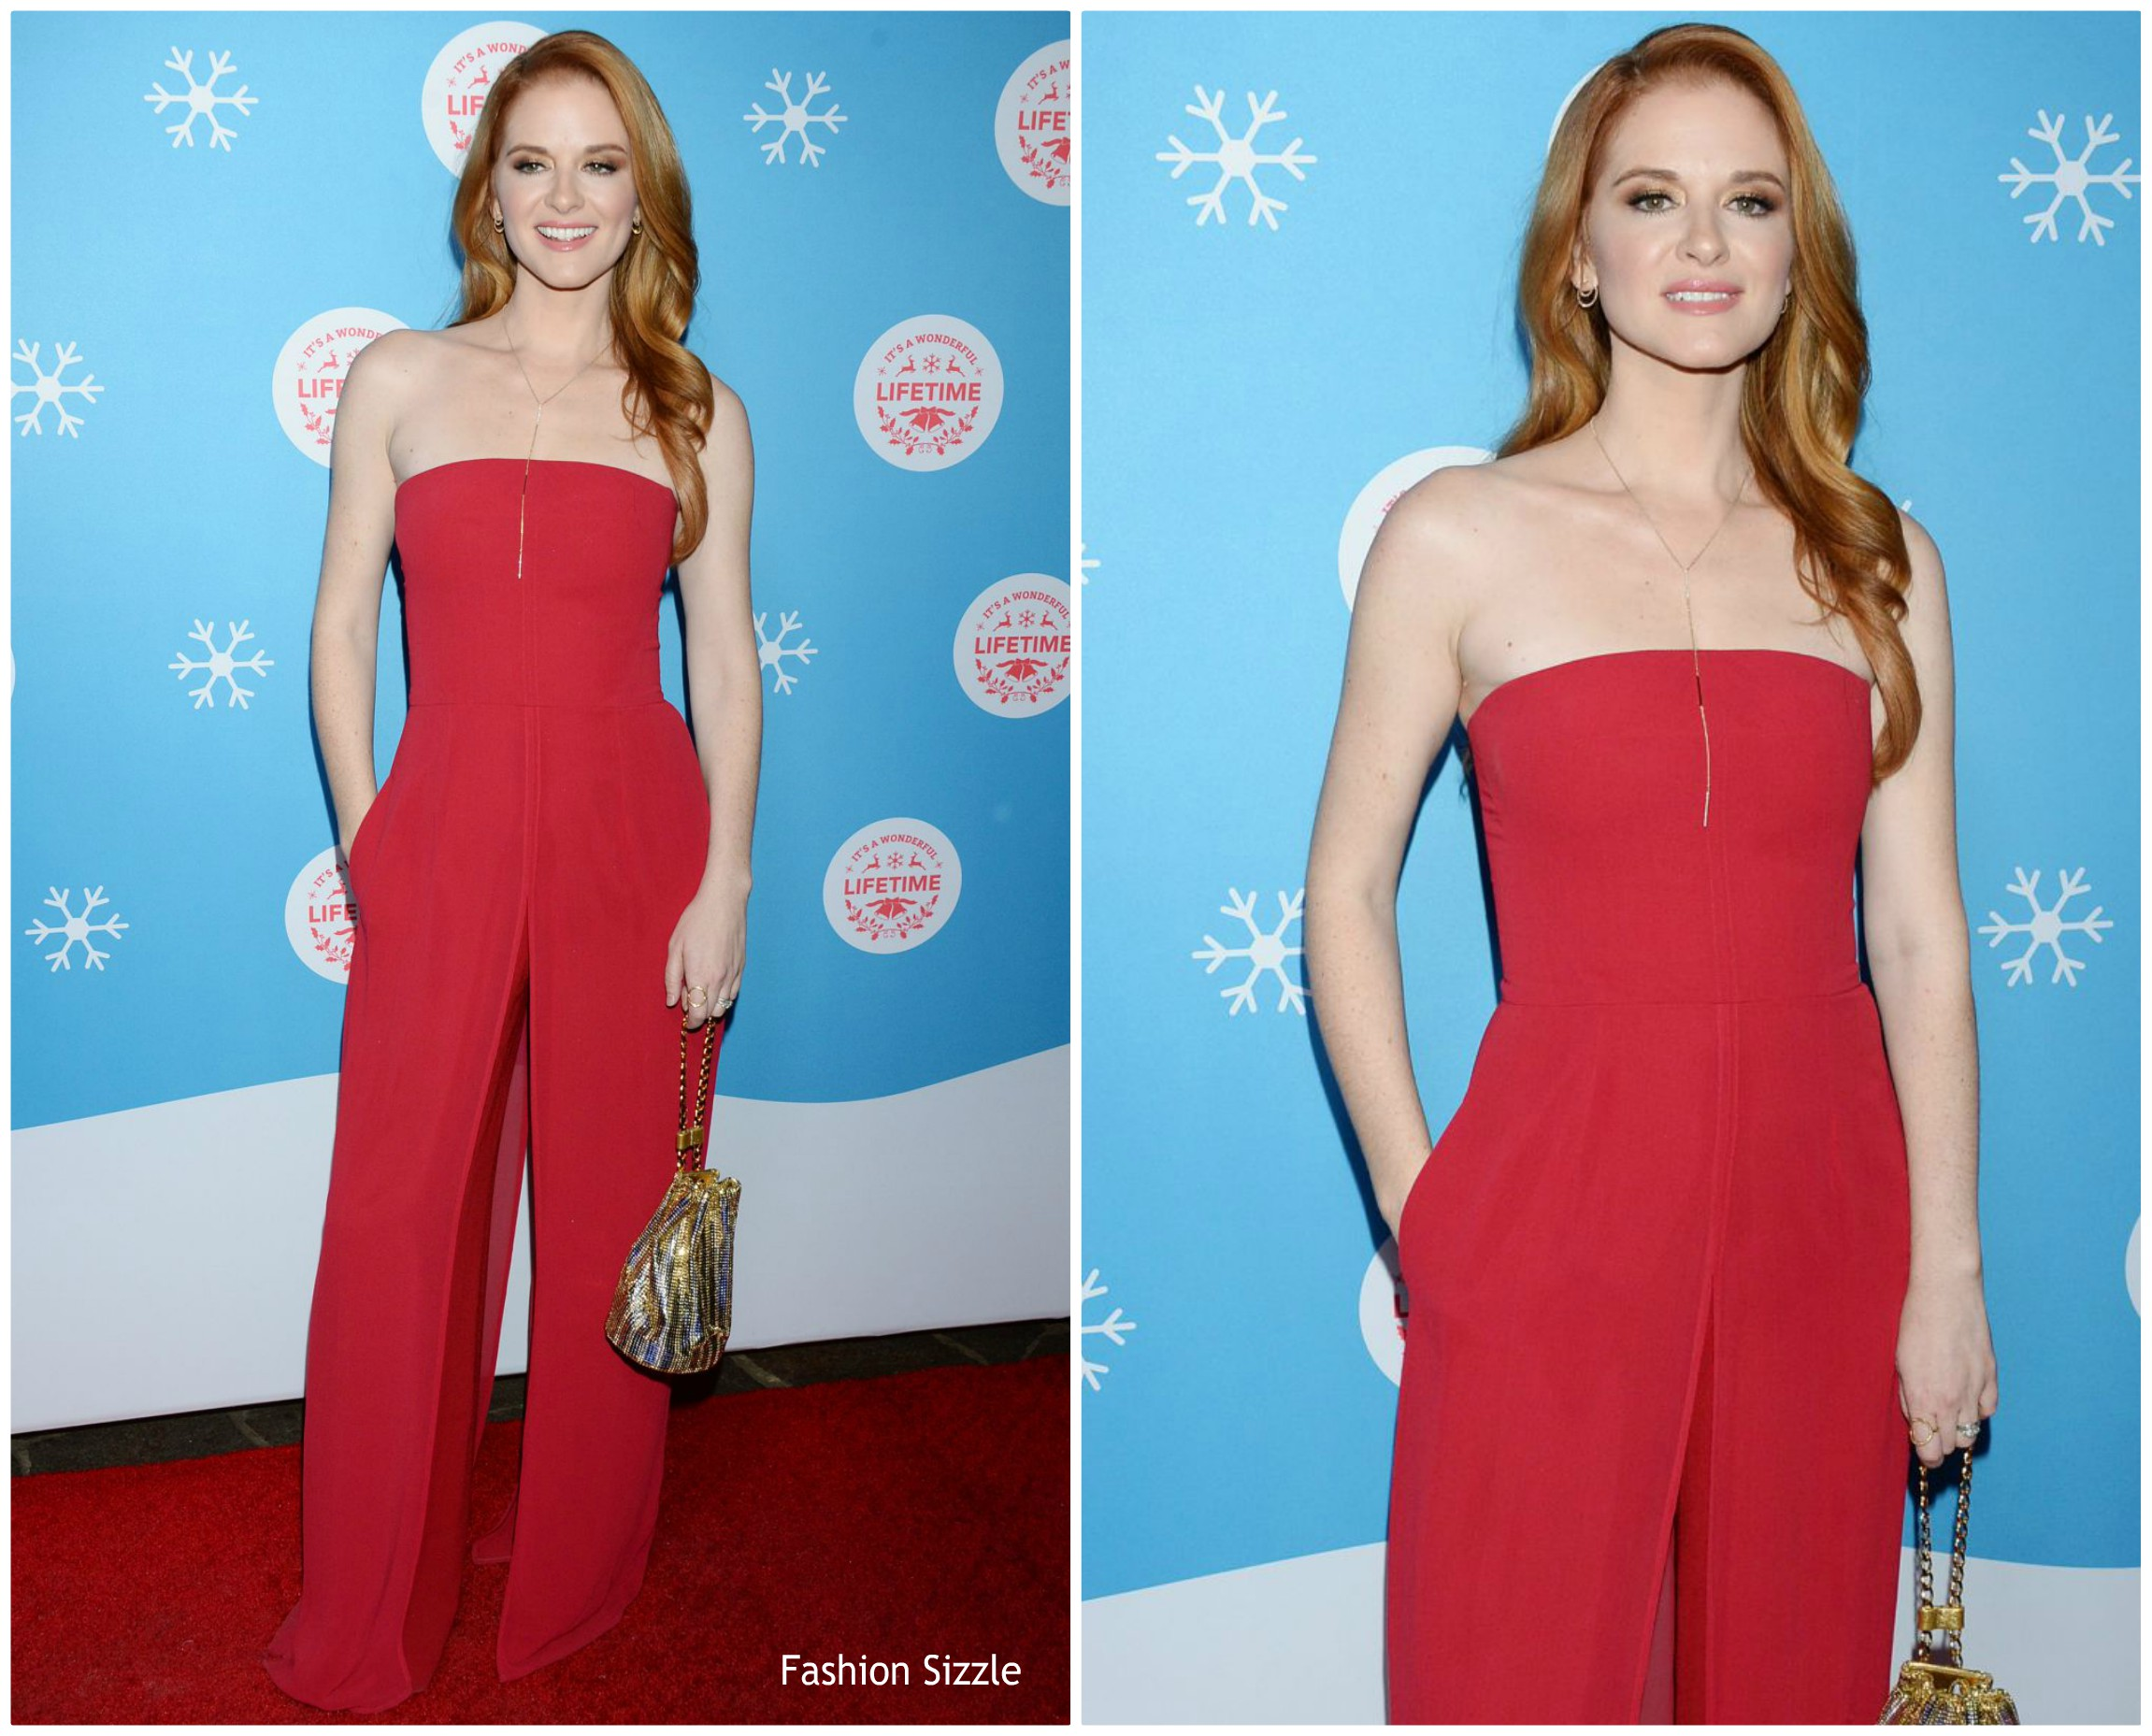 sarah-drew-in-halston-lifetime-christmas-movies-2018-event